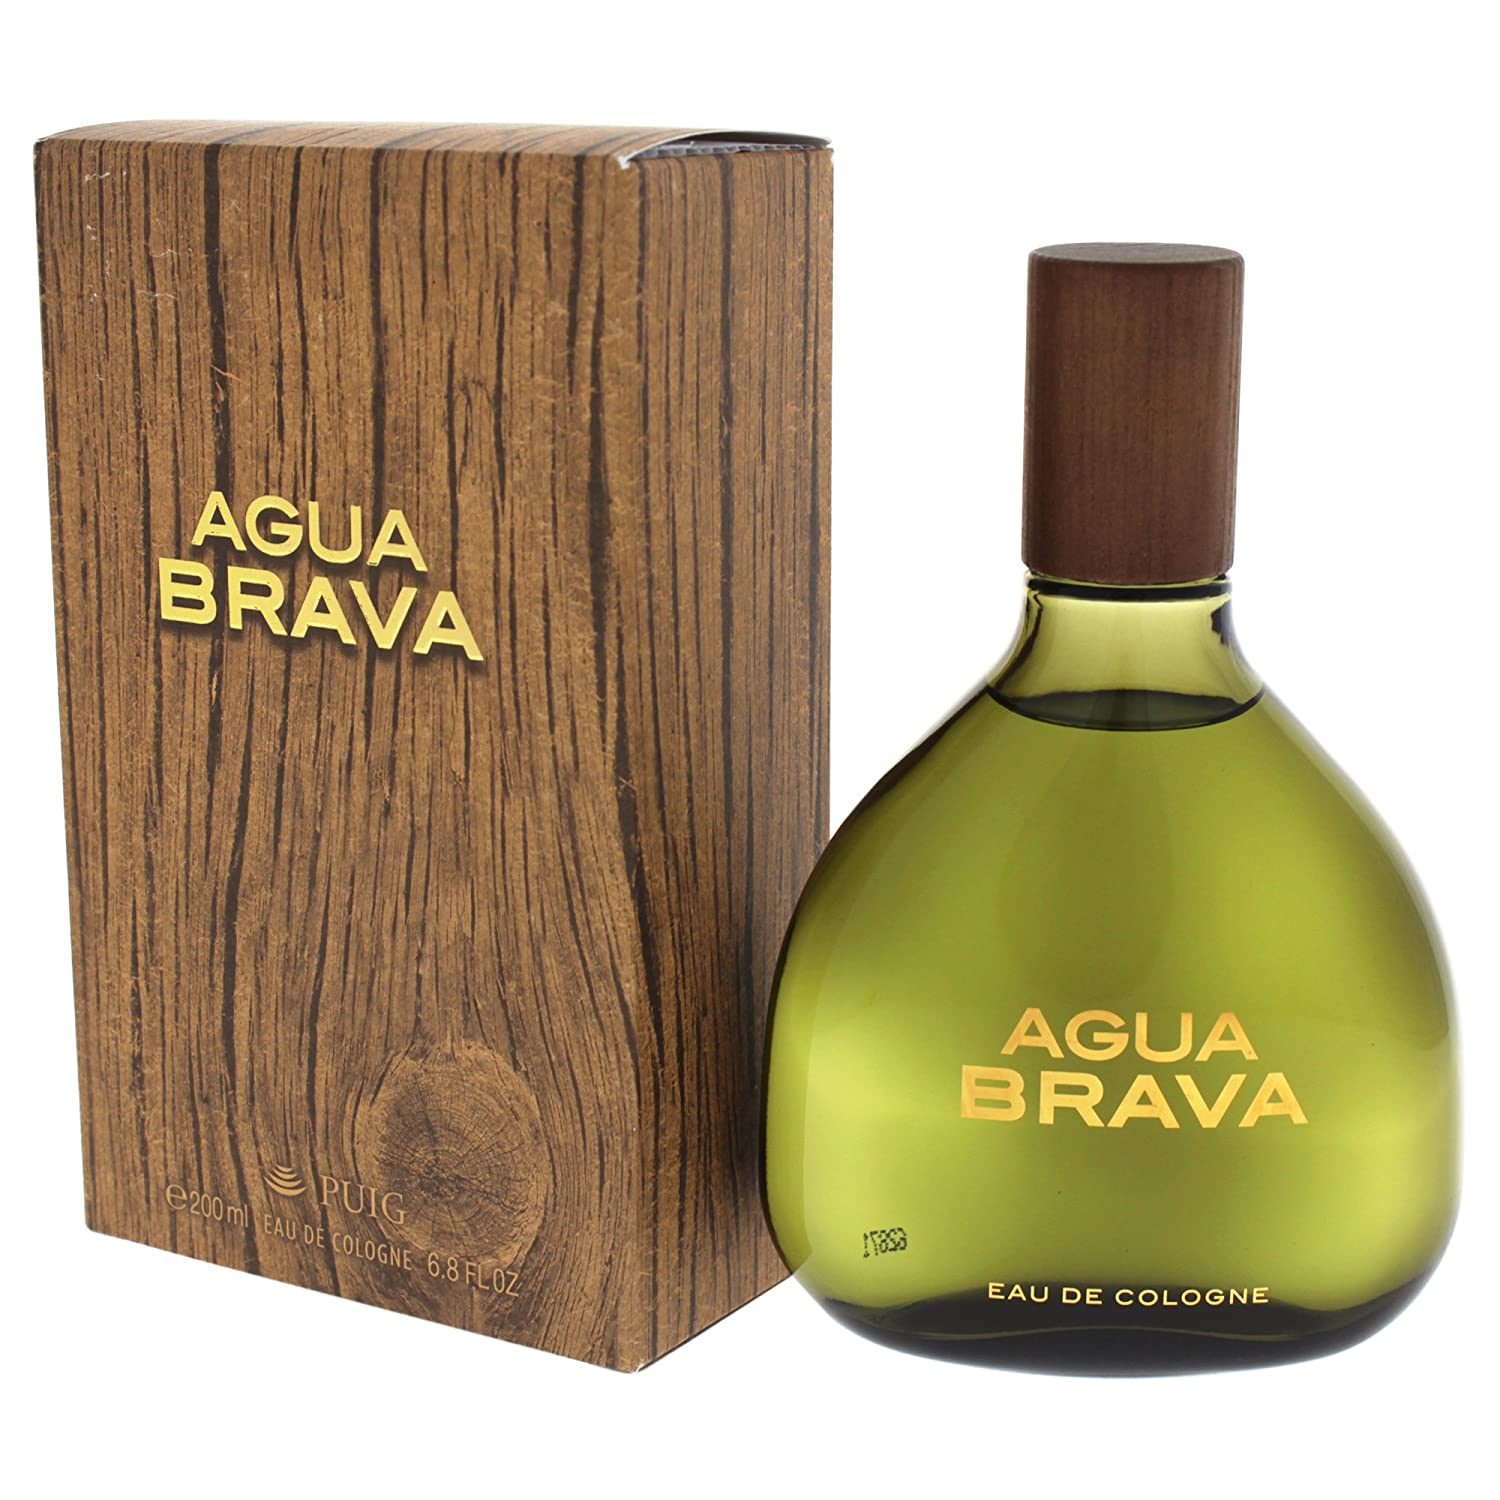 Puig Agua Brava agua de colonia 200 ml: Amazon.es